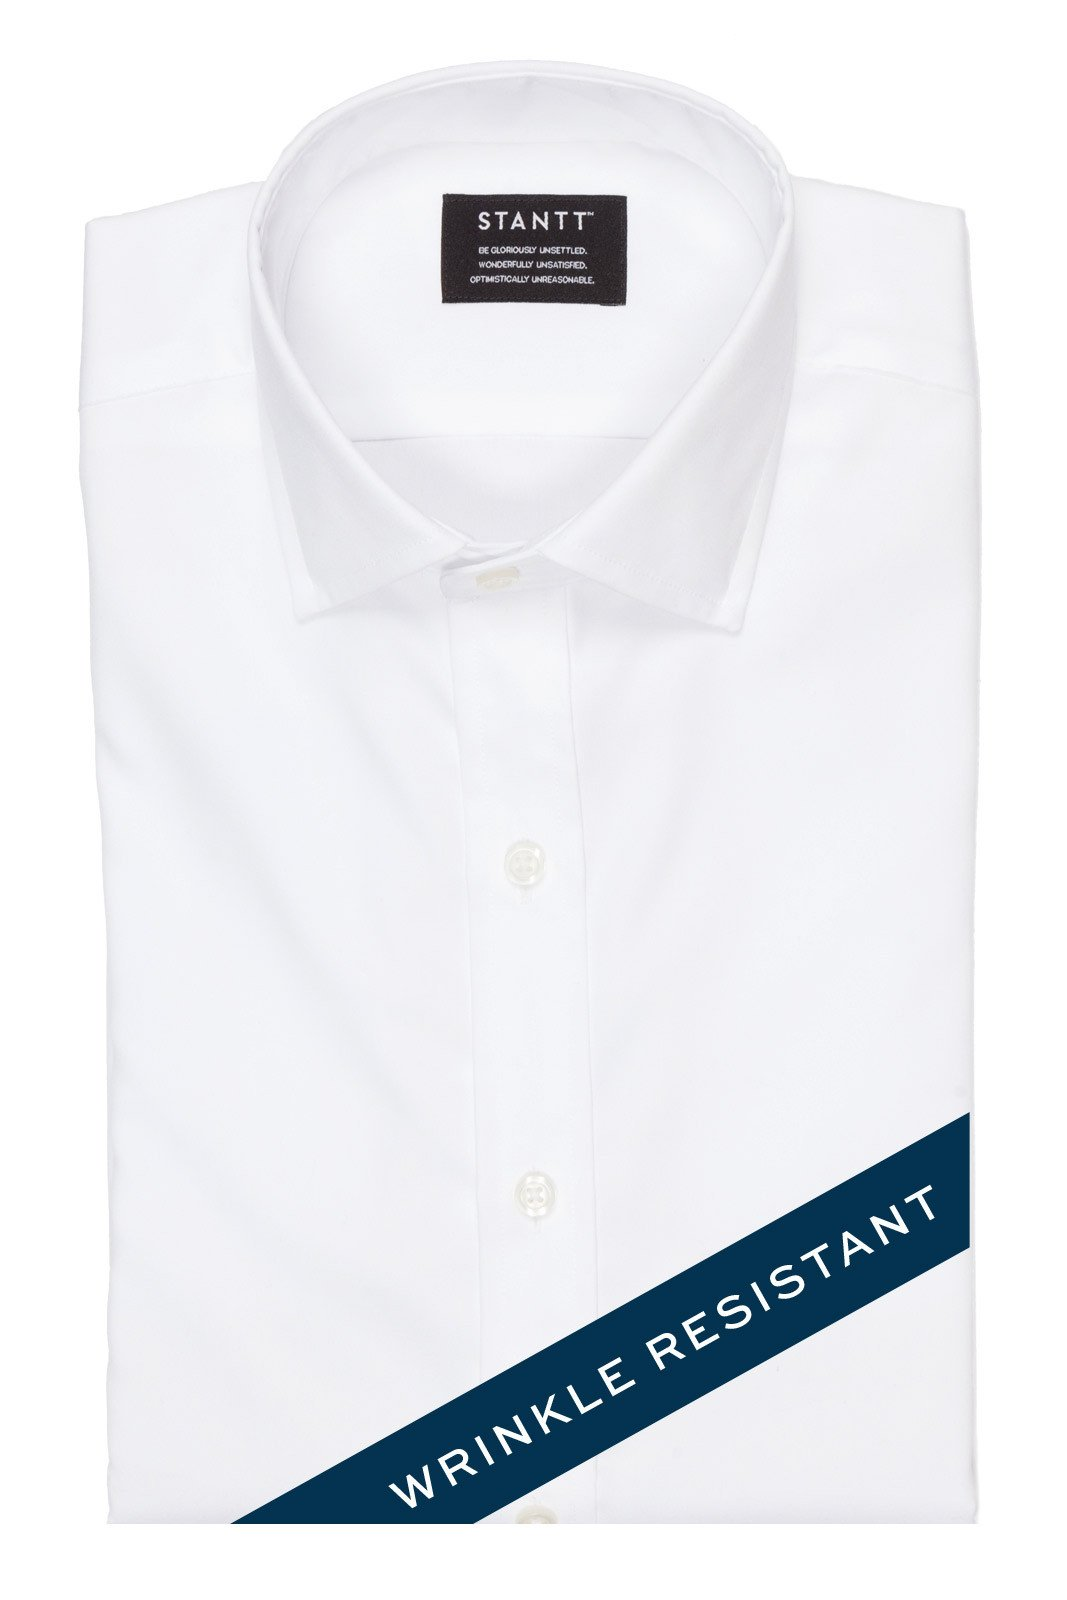 Wrinkle-Resistant White Oxford: Modified-Spread Collar, French Cuff